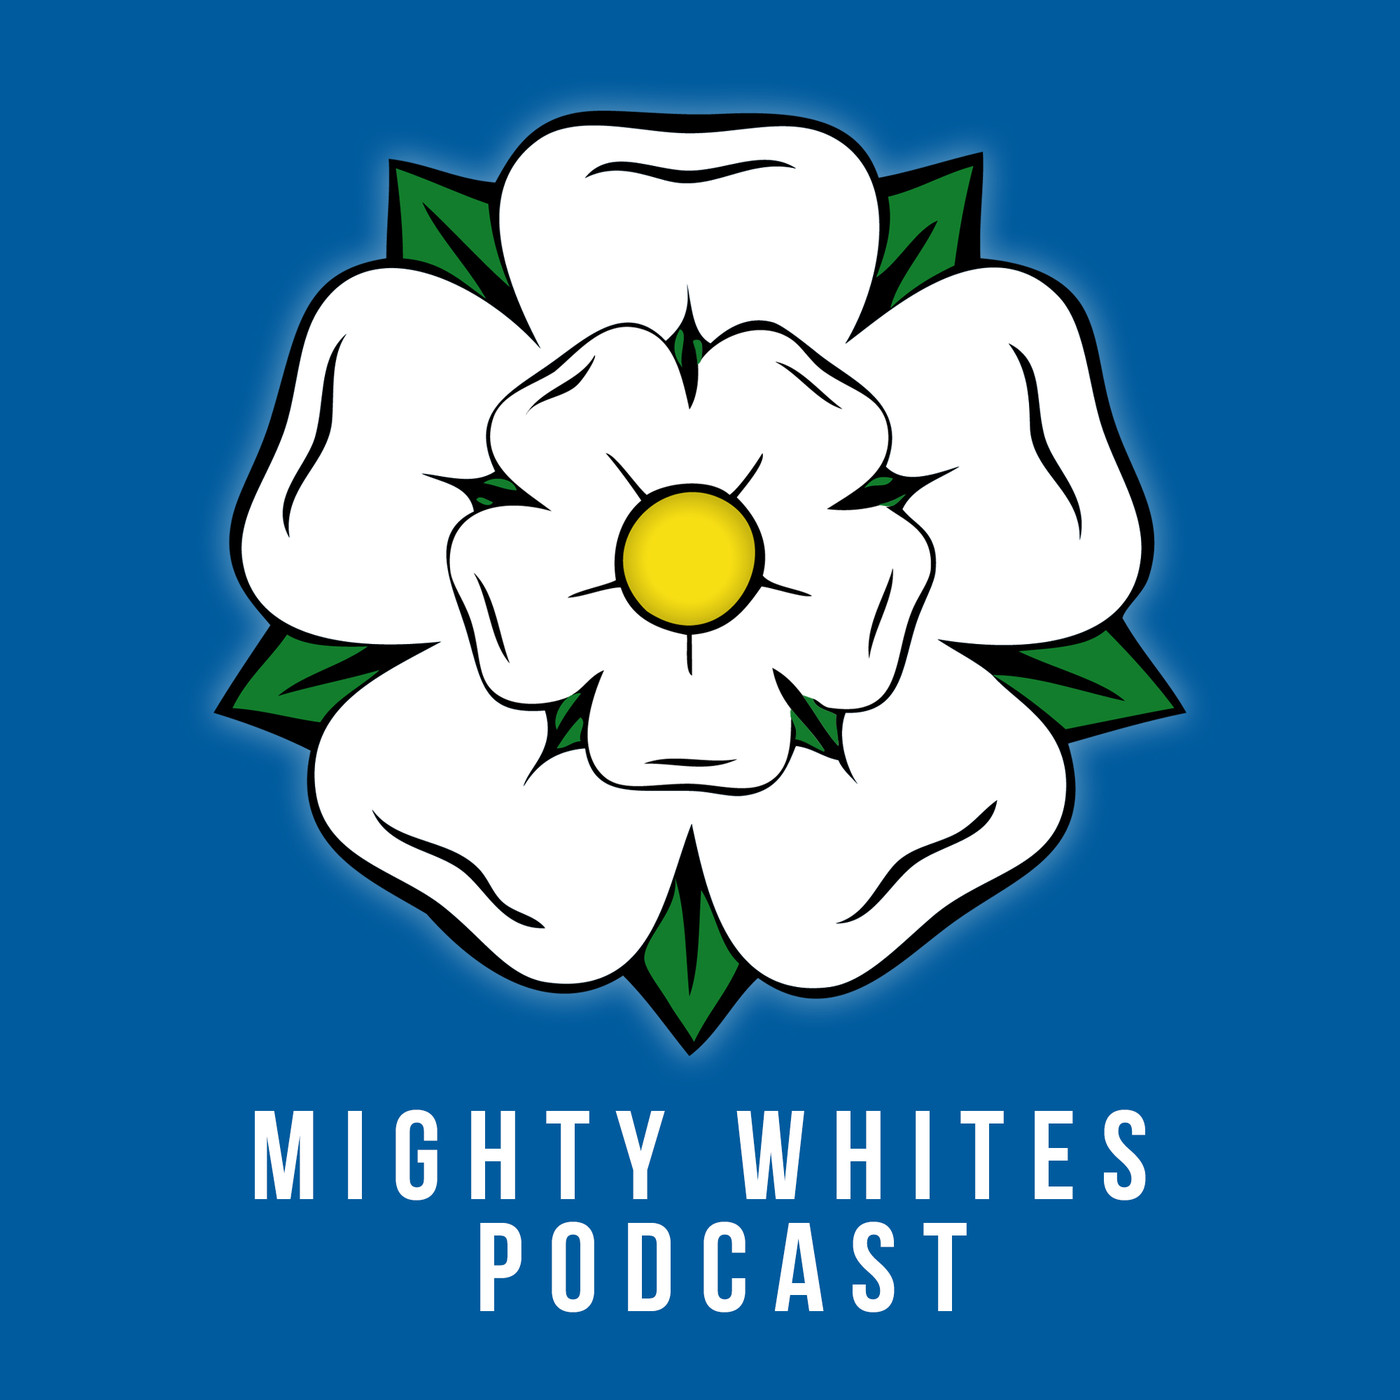 Mighty Whites Podcast – Episode 39 – 25.01.2019